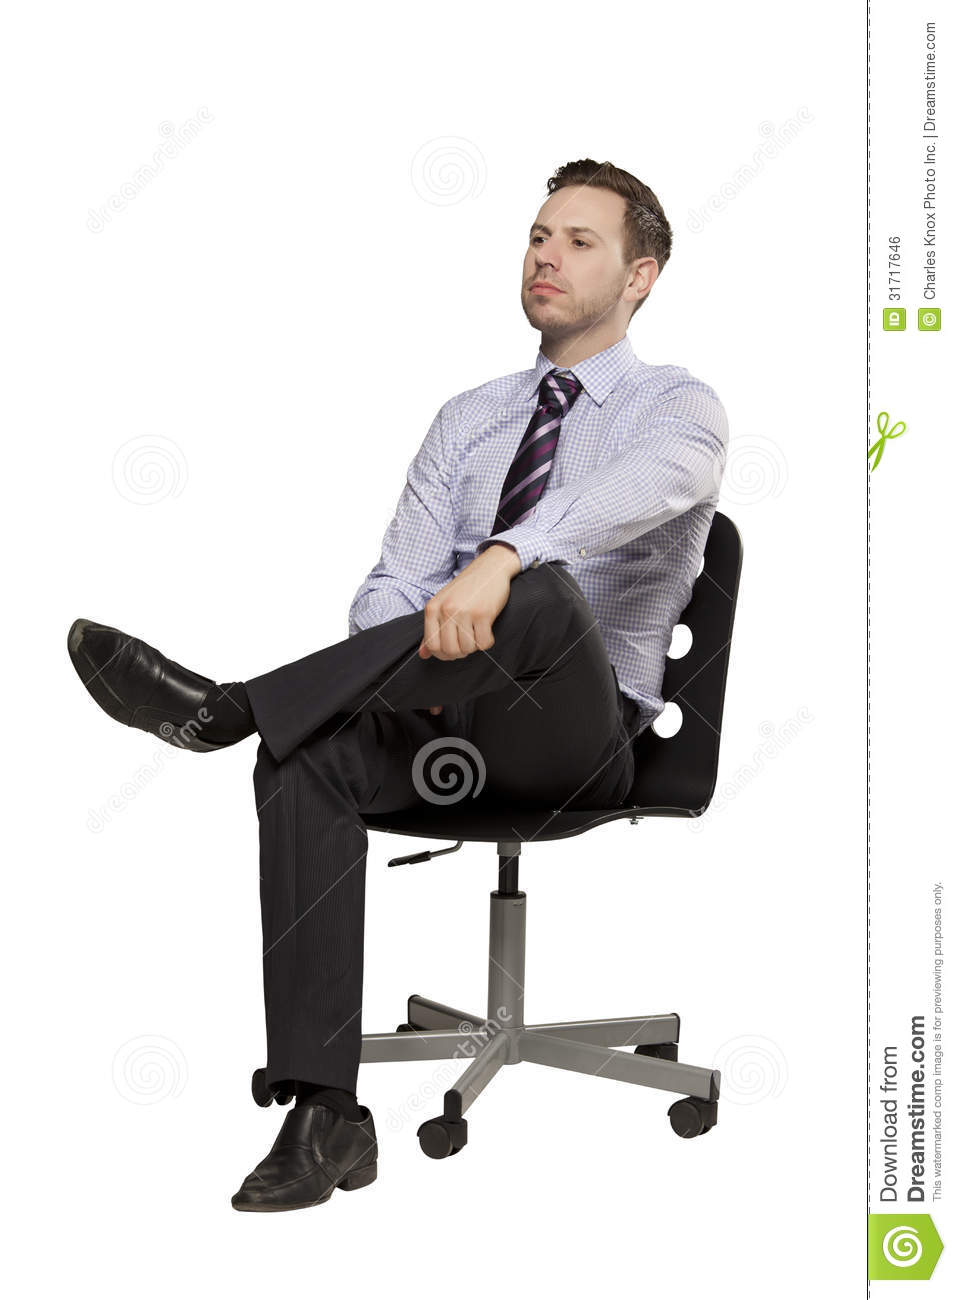 Exercises while sitting at desk desk exercises redefining for Sitting easy chairs